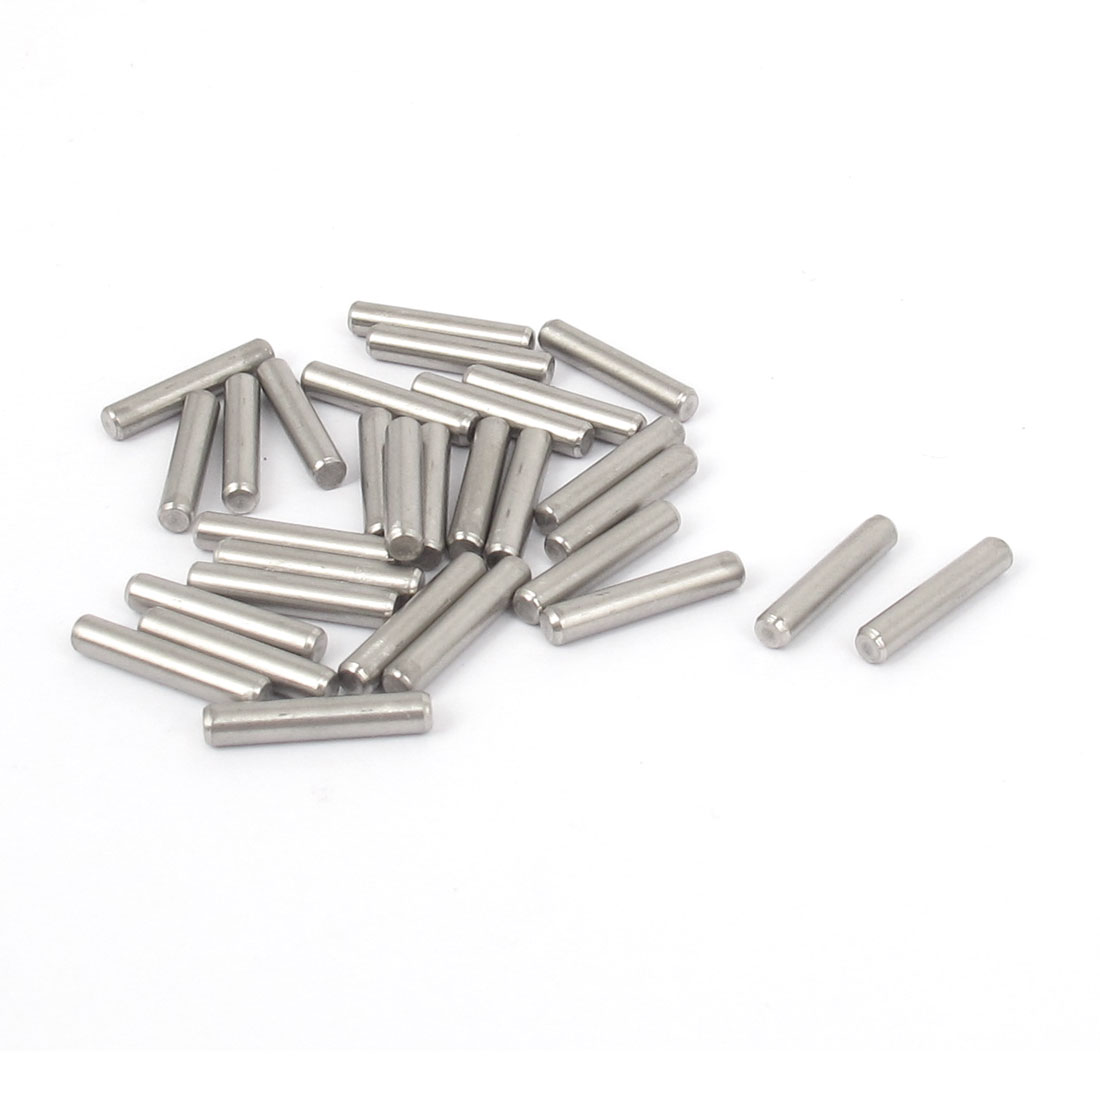 3mmx16mm 304 Stainless Steel Parallel Dowel Pins Fastener Elements 30pcs